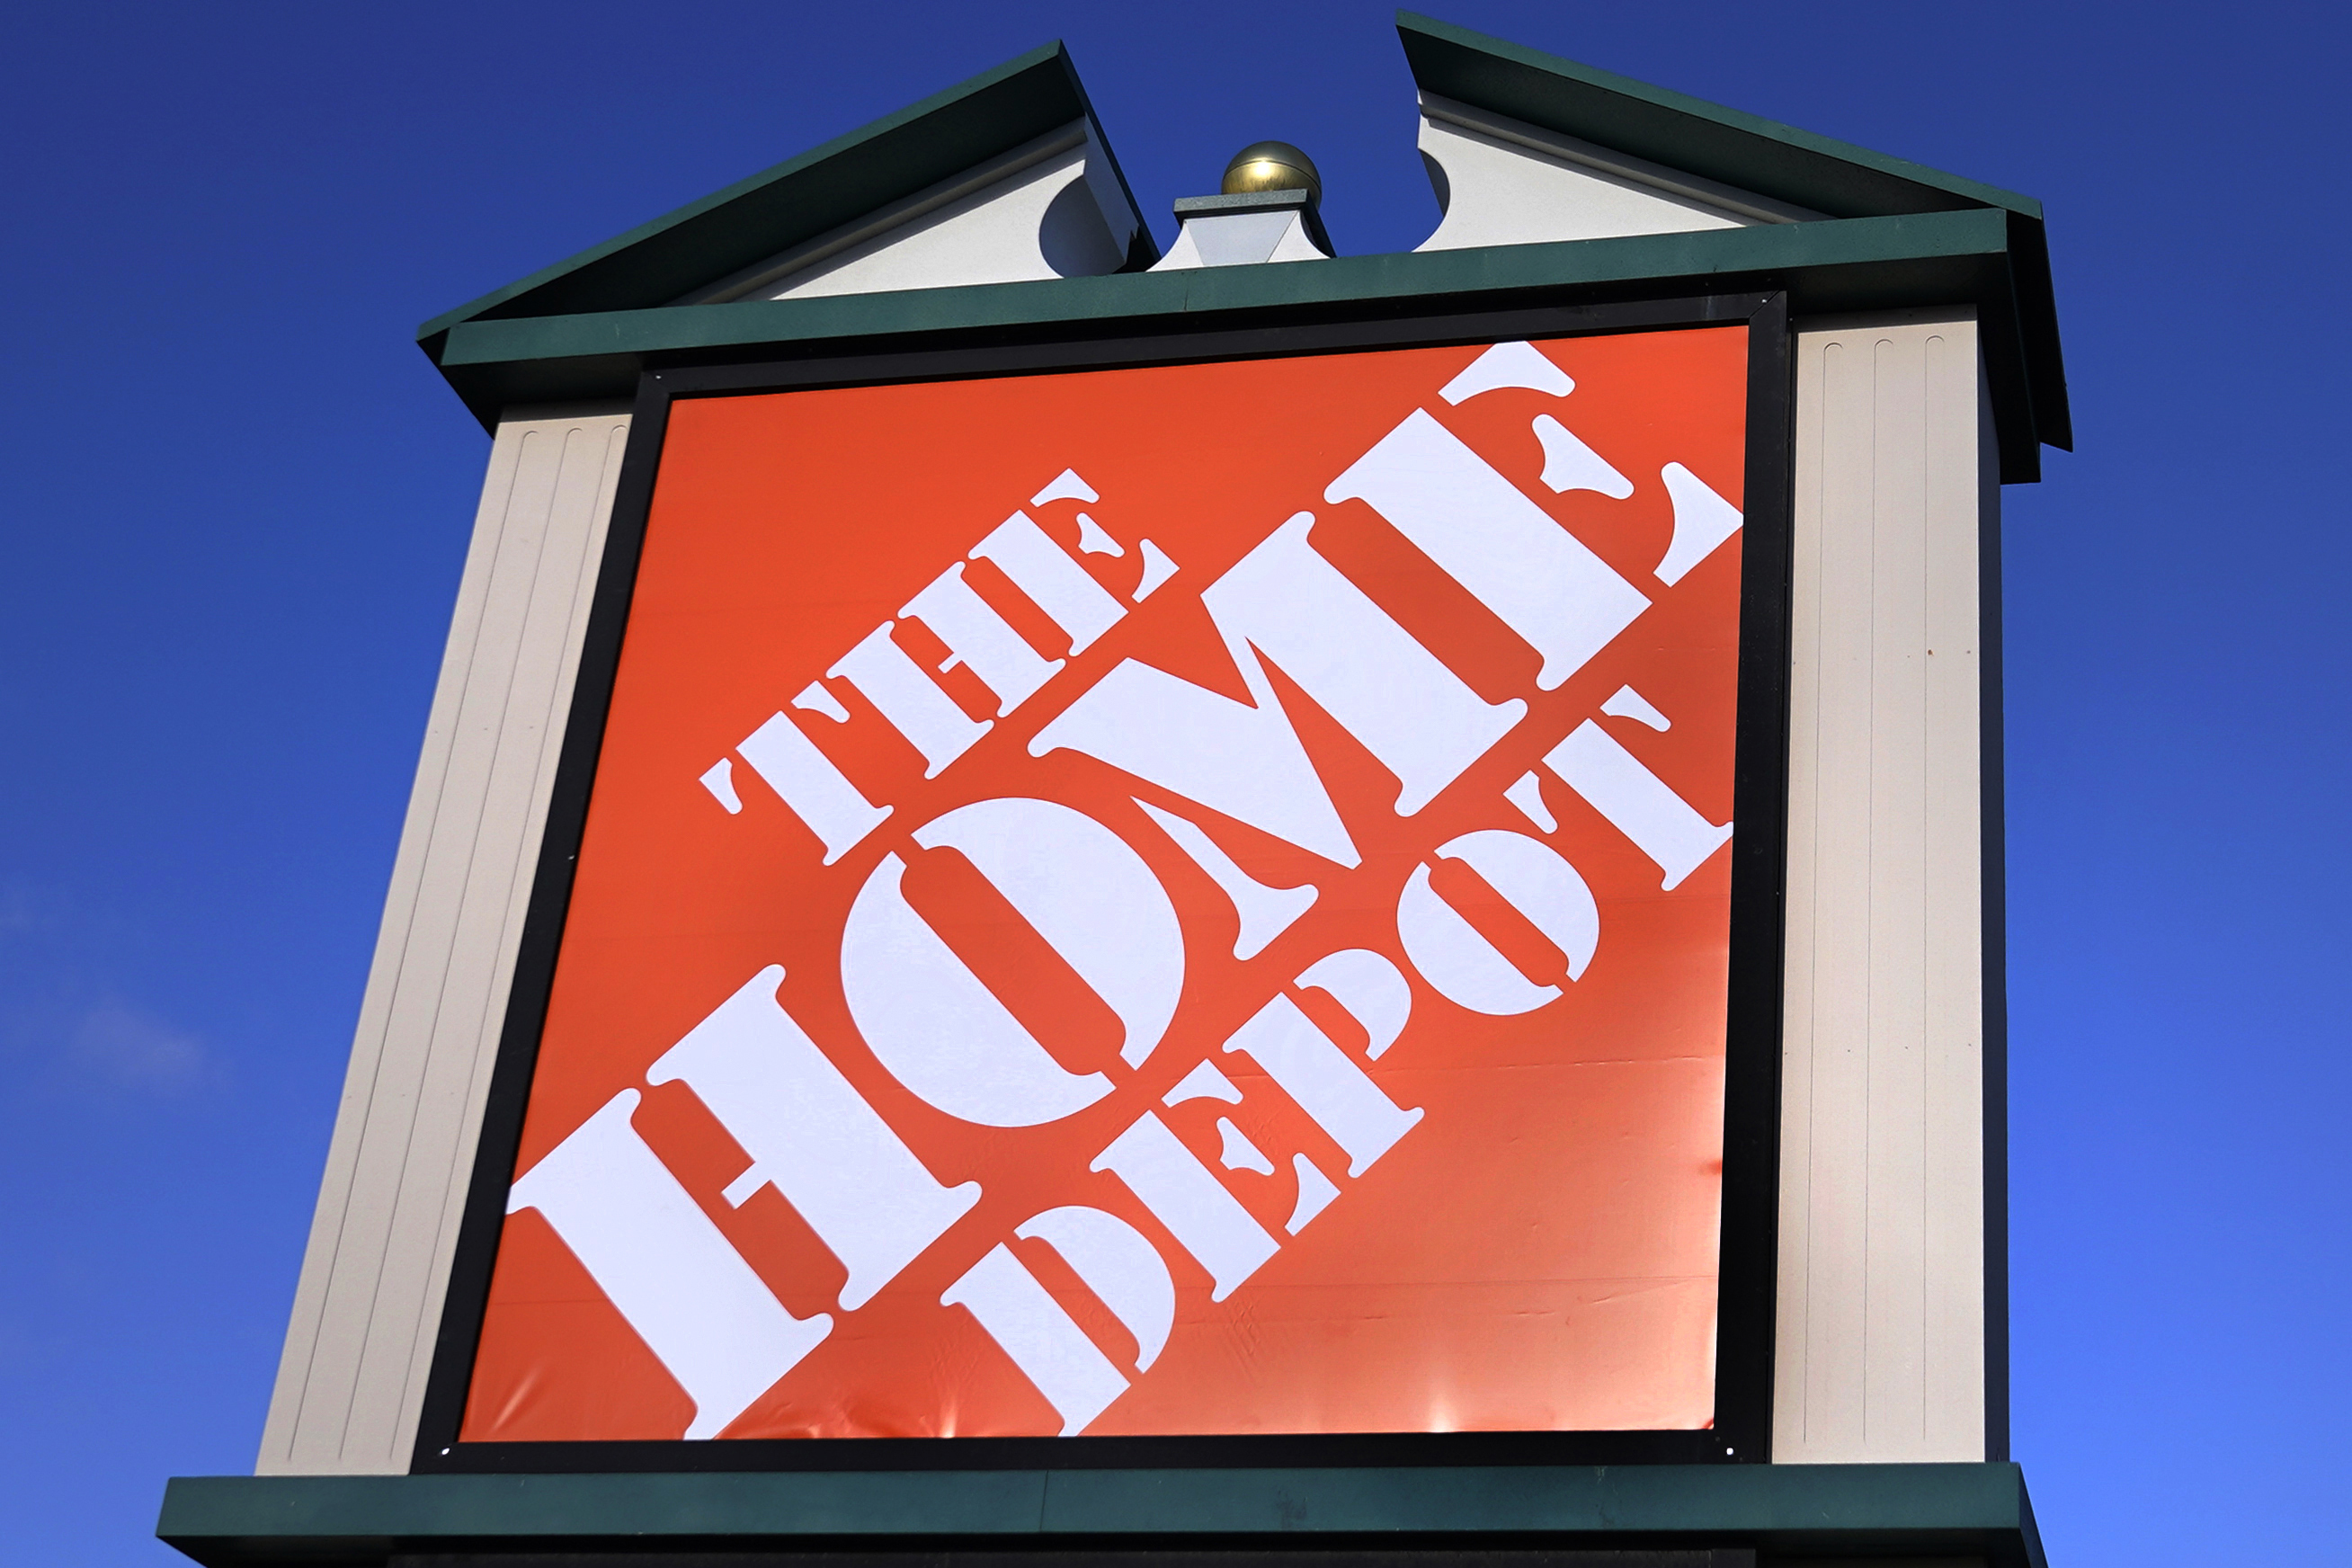 Home Depot Agrees To 17 5m Settlement In 2014 Data Breach Wsyr